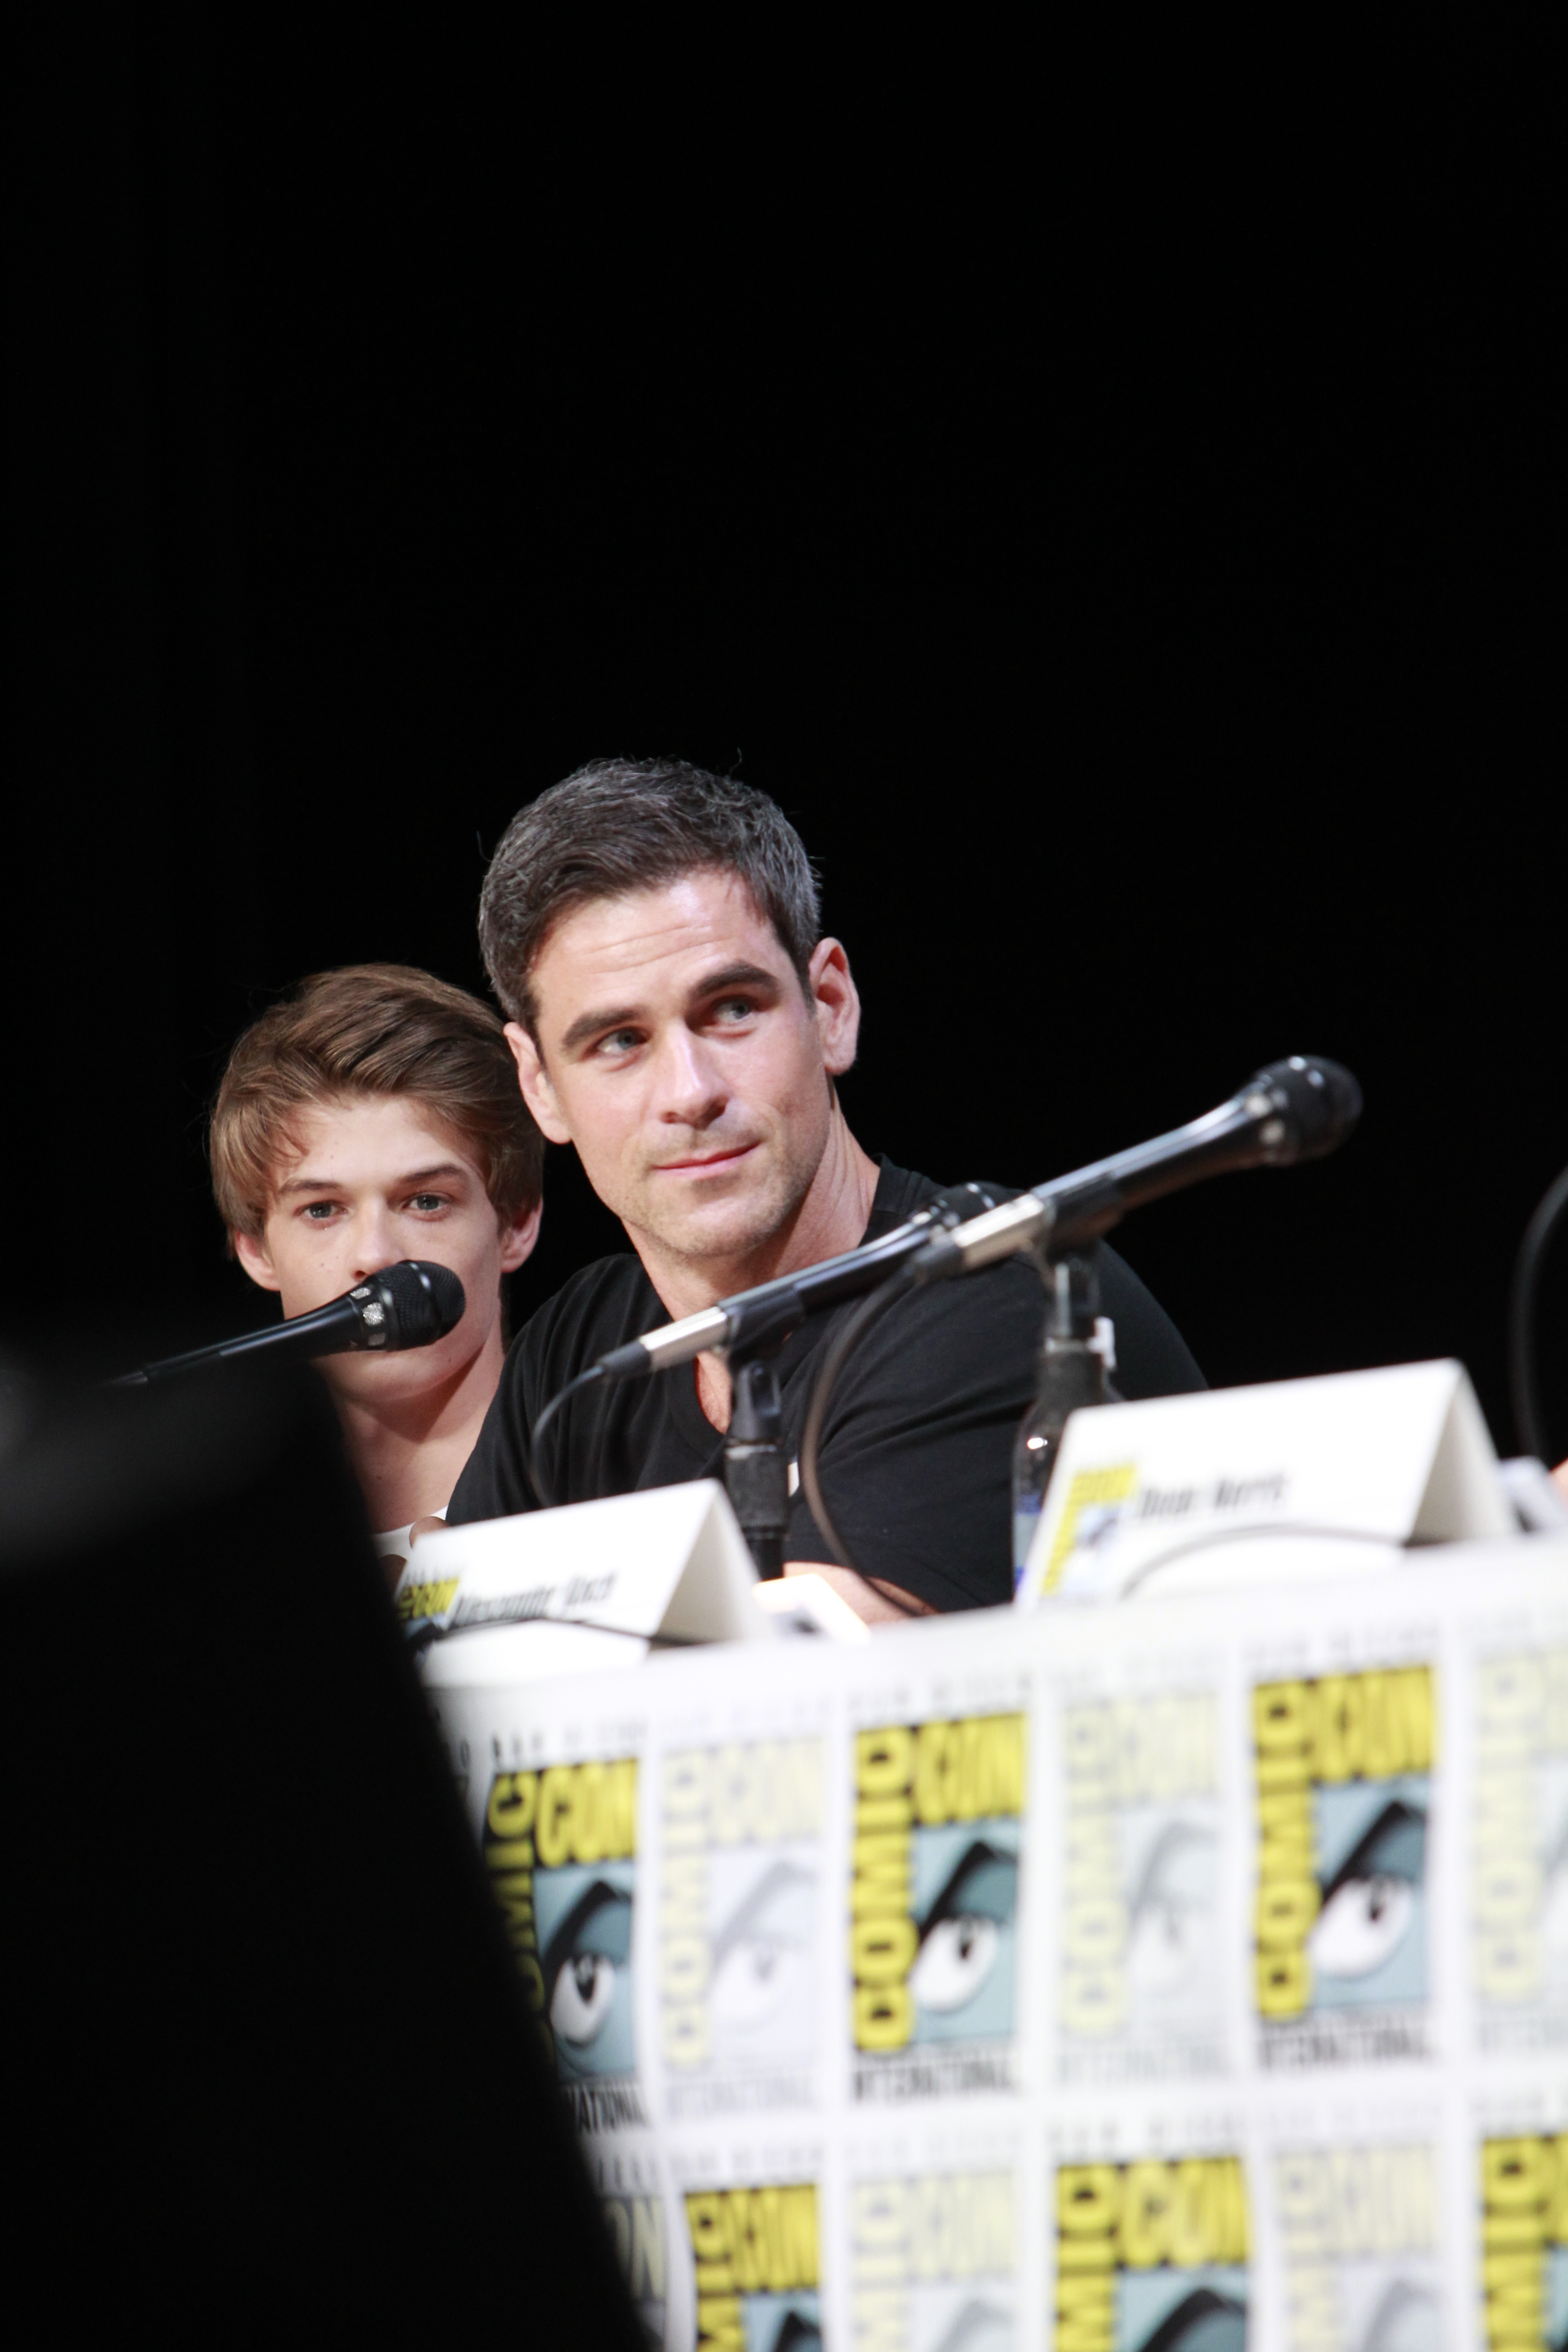 Colin Ford and Eddie Cahill